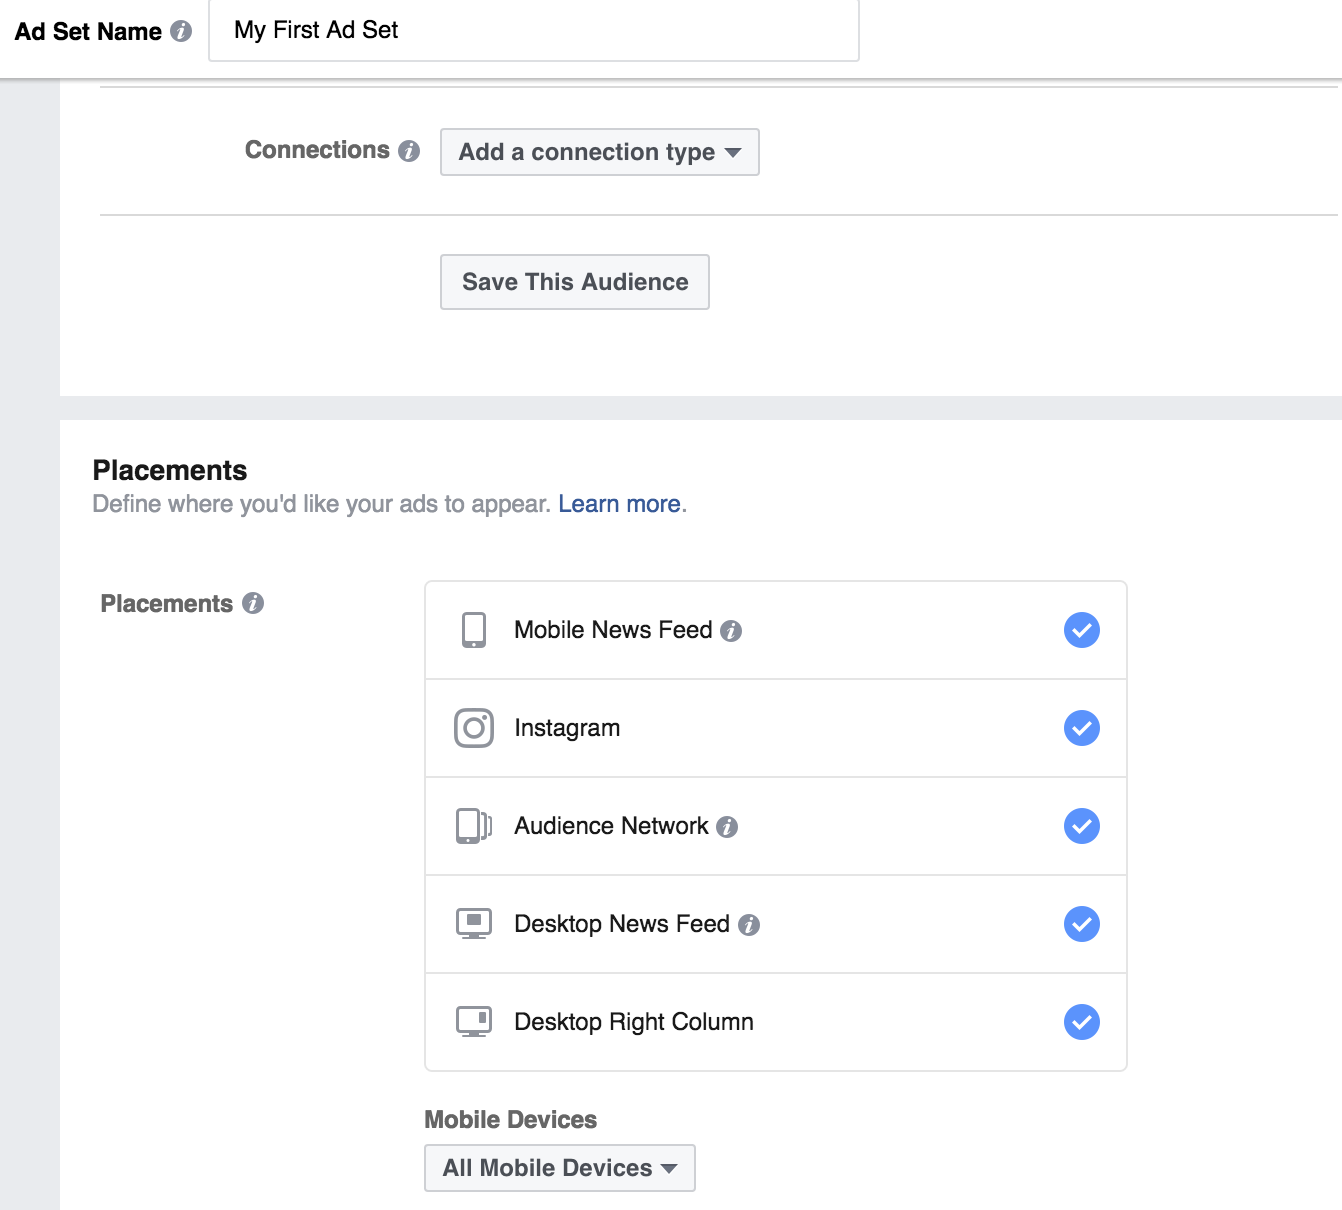 Connection Types and Placements - Facebook Ad Sets